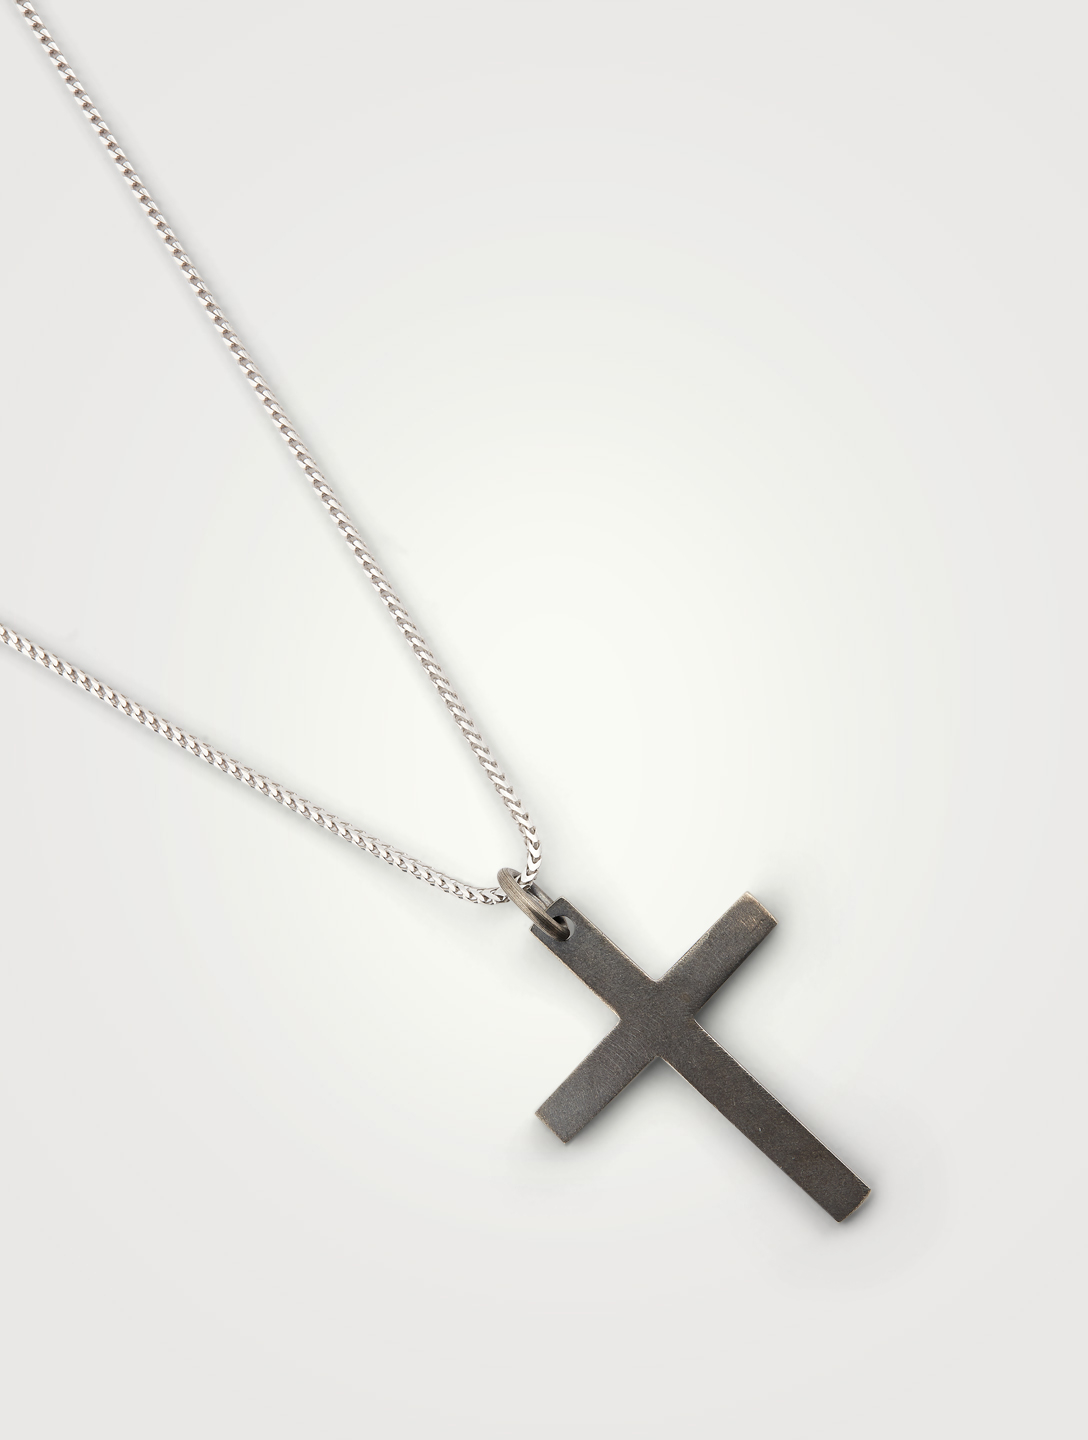 MARCO DAL MASO The Cross Black And White Silver Wide Pendant Necklace Men's Black